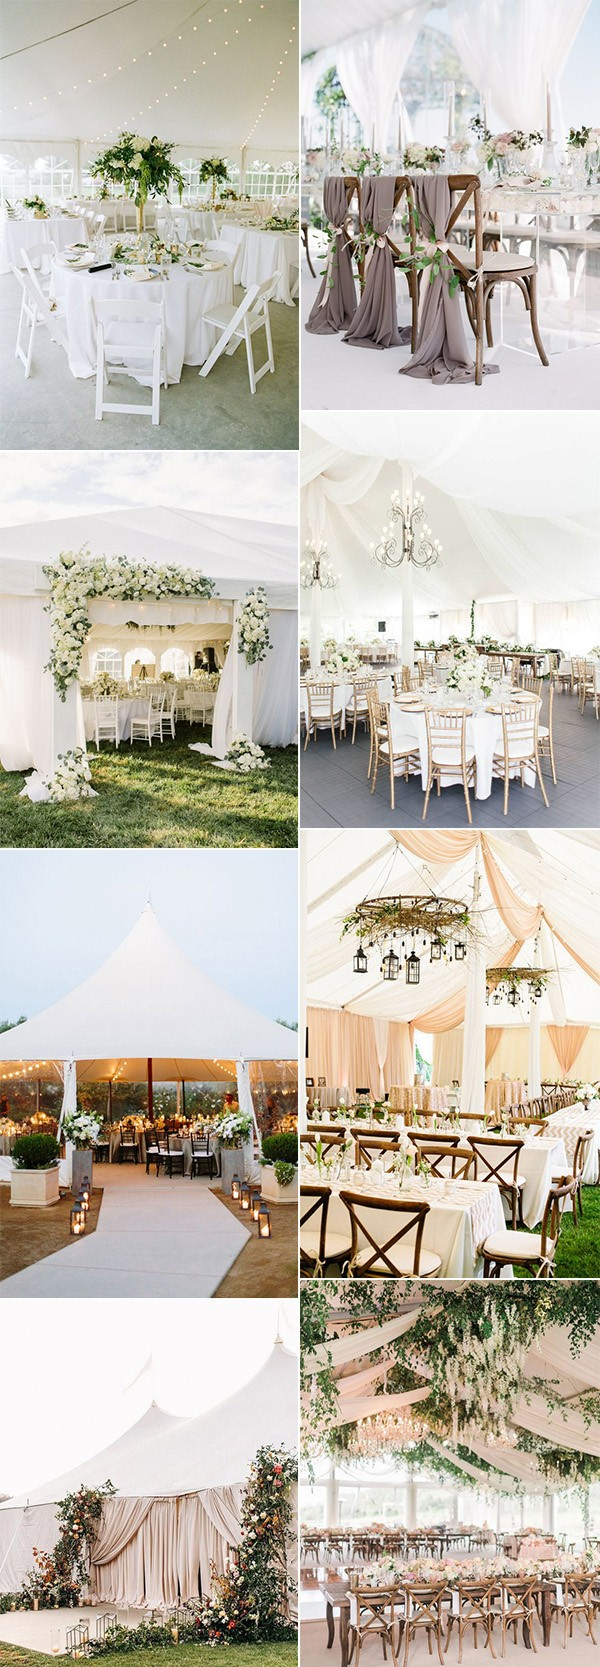 tented wedding reception ideas for 2019 trends